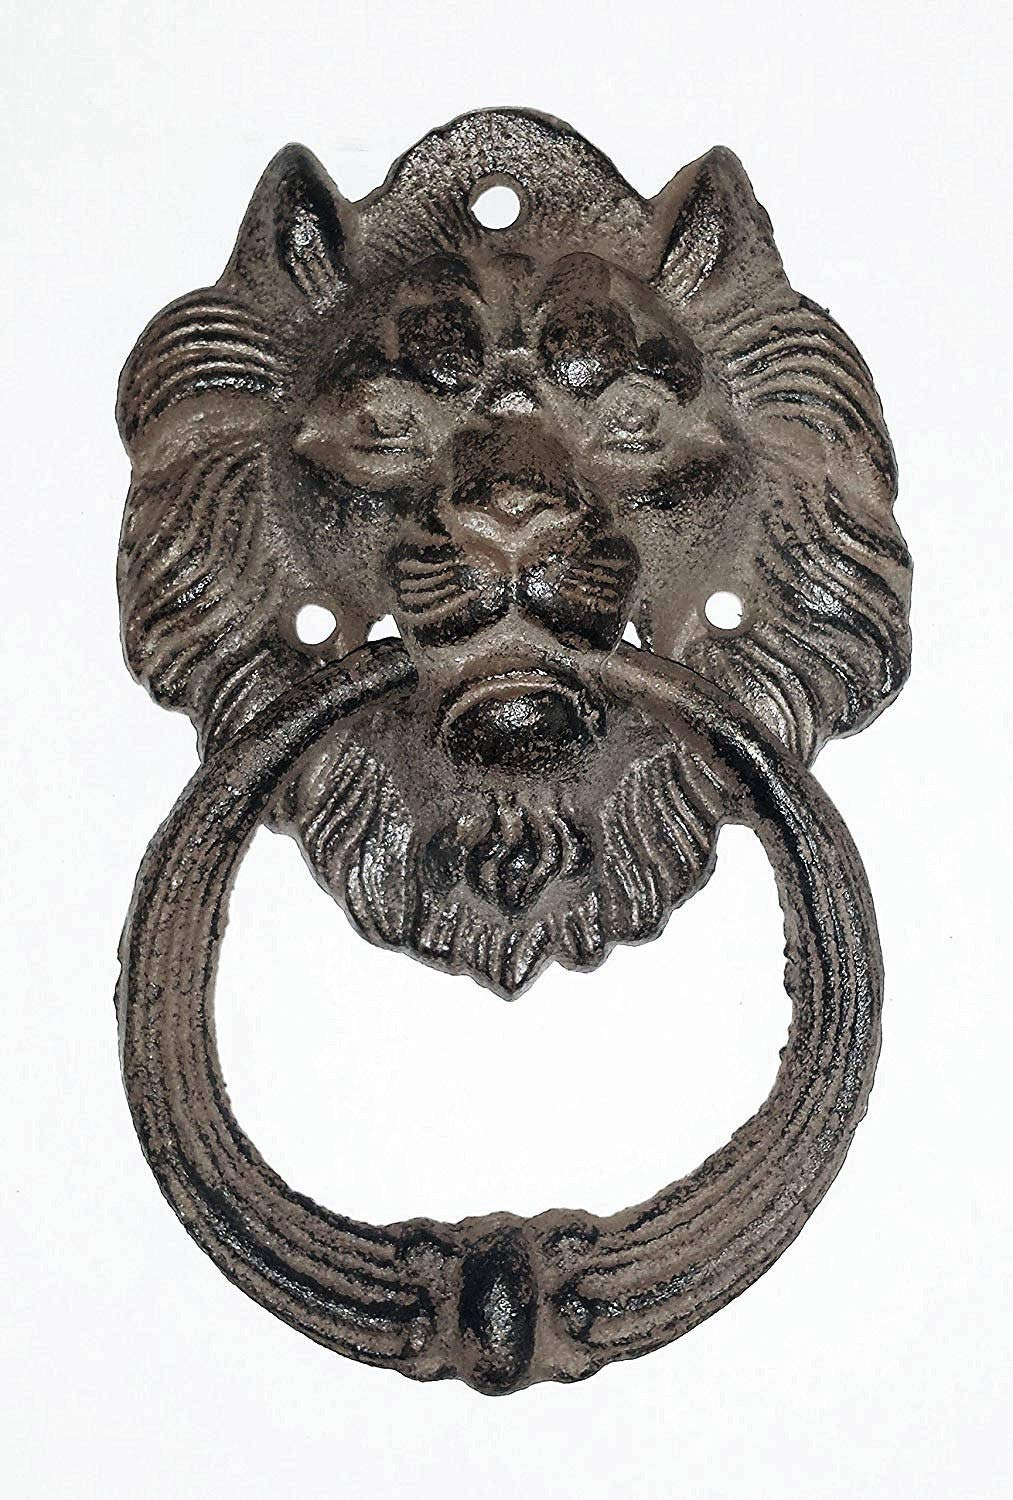 ''ABC Products'' - Heavy Cast Iron - Hammer Door Knocker - Shape of A Lion's Head - All-Purpose Hanging Ring - (Antique Rustic Bronze Finish - for Homes, Log Cabins, Cottage and More)